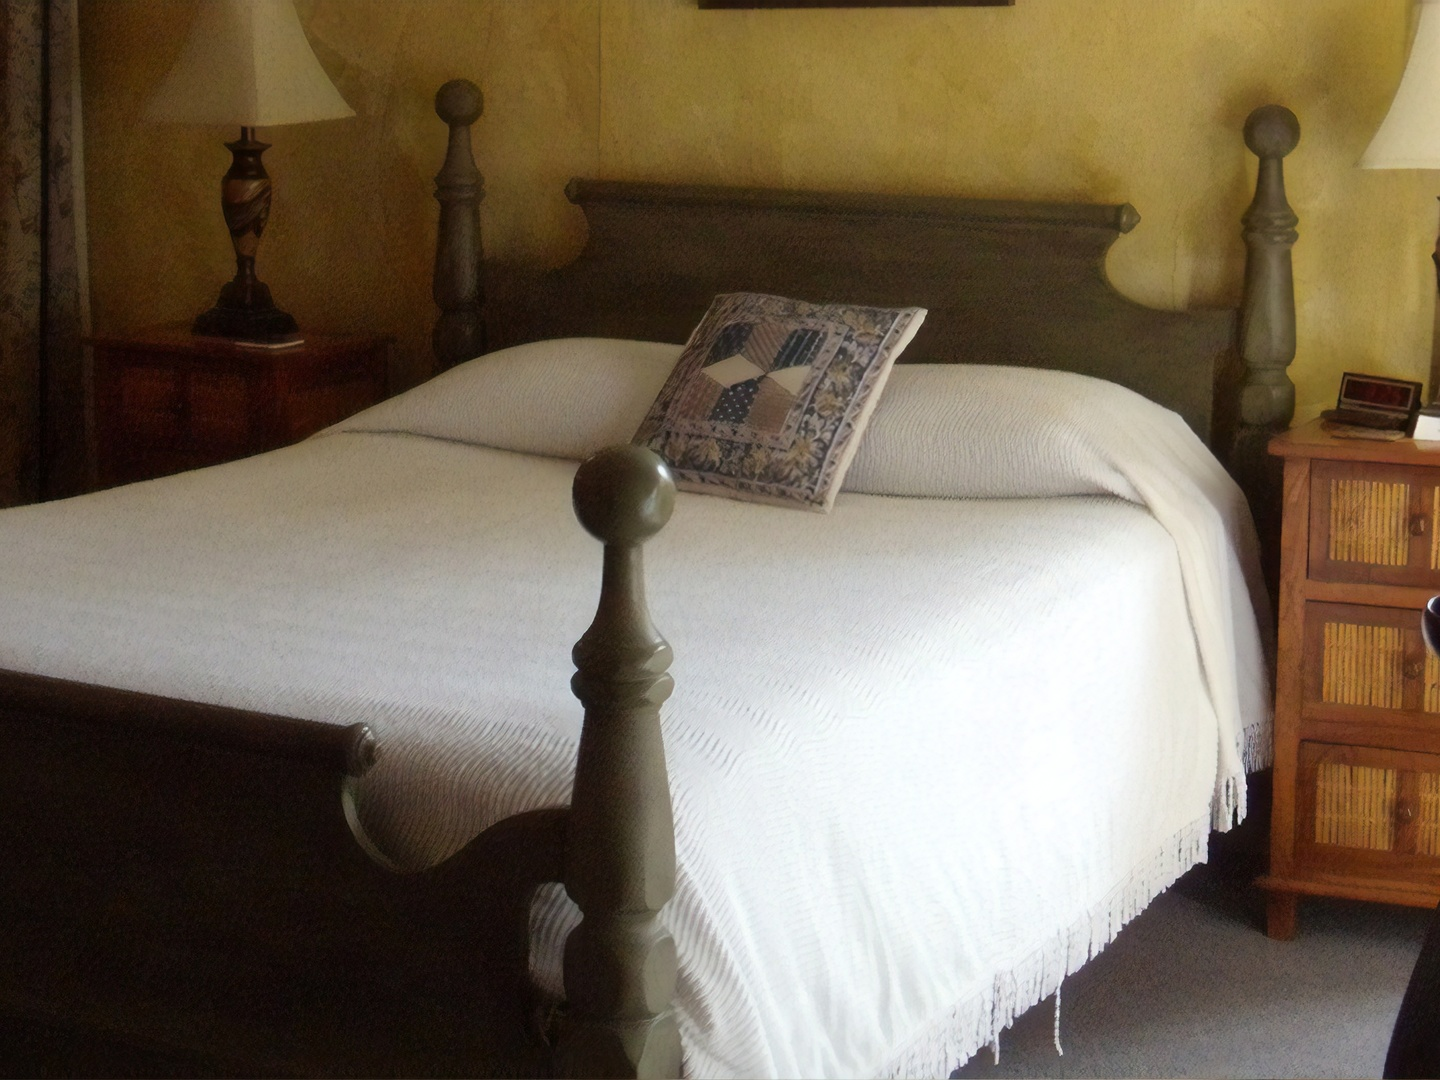 A bedroom with a bed in a hotel room at Pierre Coulon Guest House.